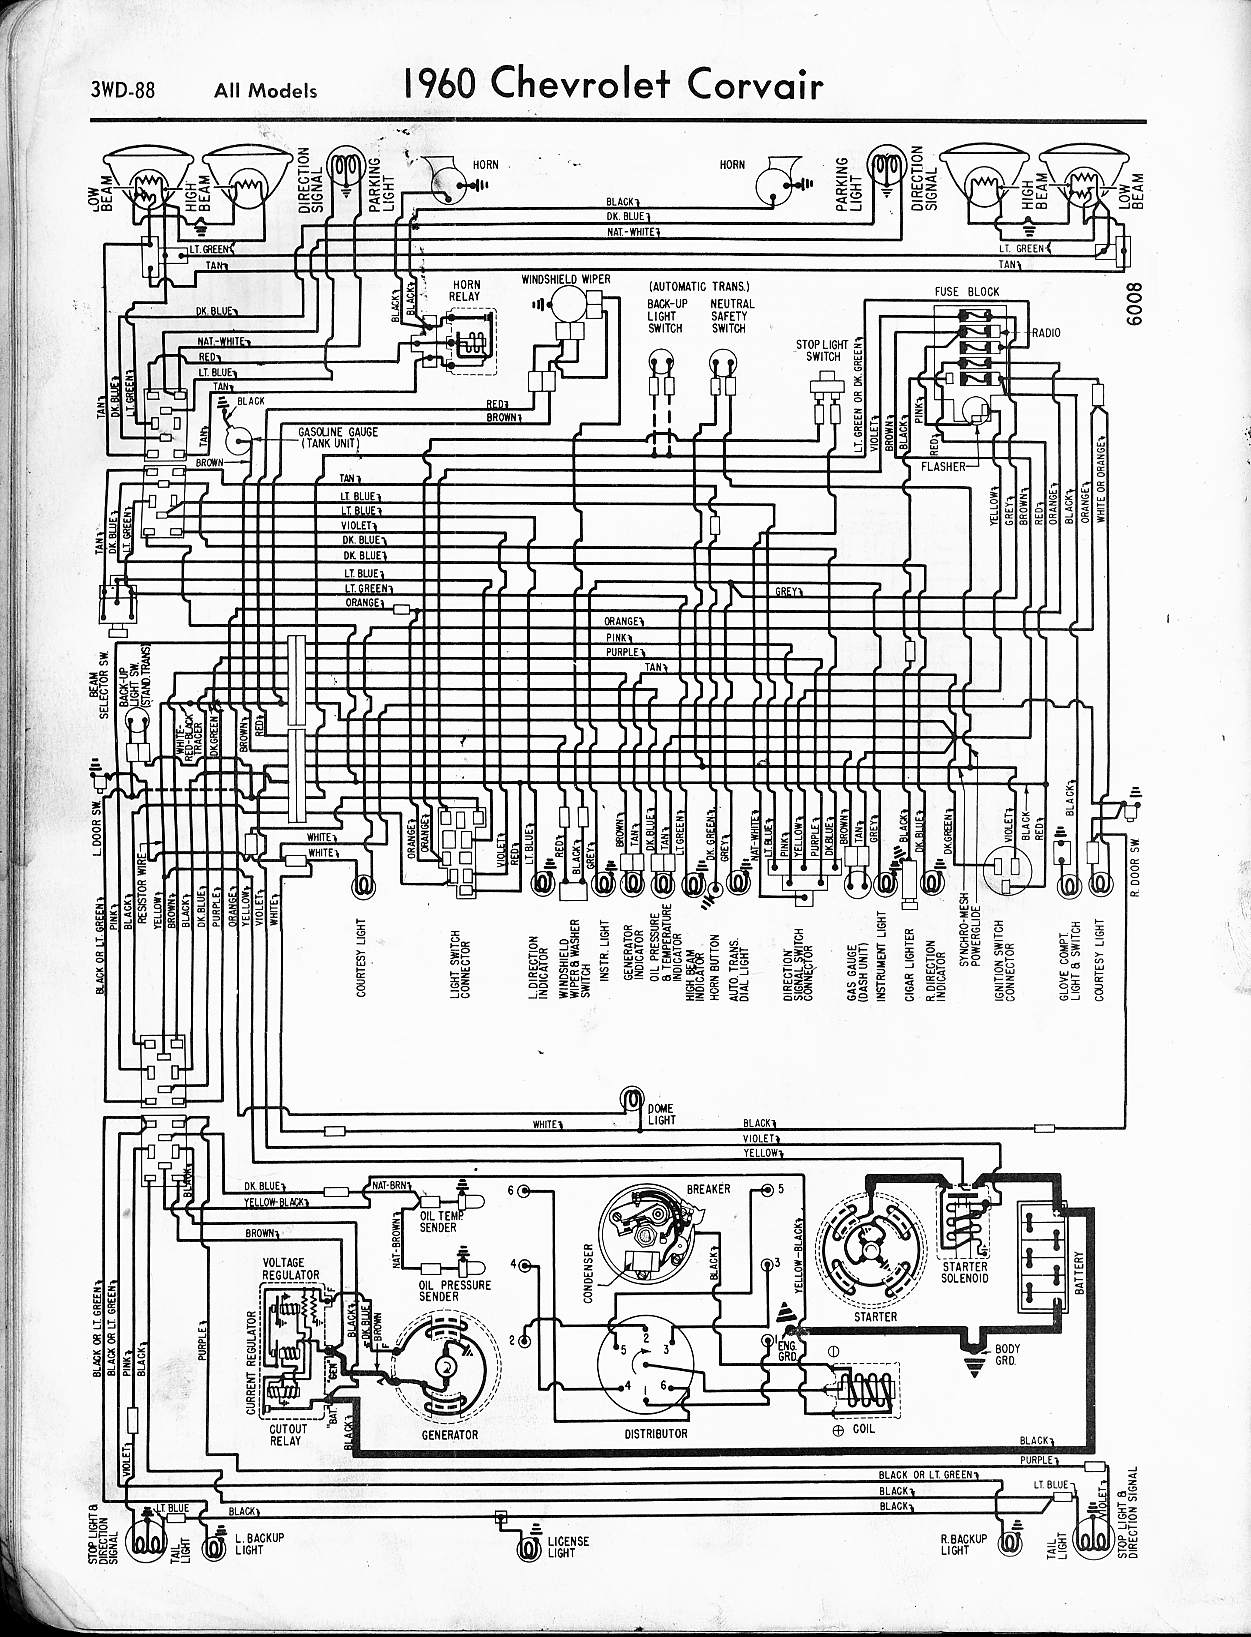 1963 corvair wiring diagram 1962 corvair wiring diagram 57 - 65 chevy wiring diagrams